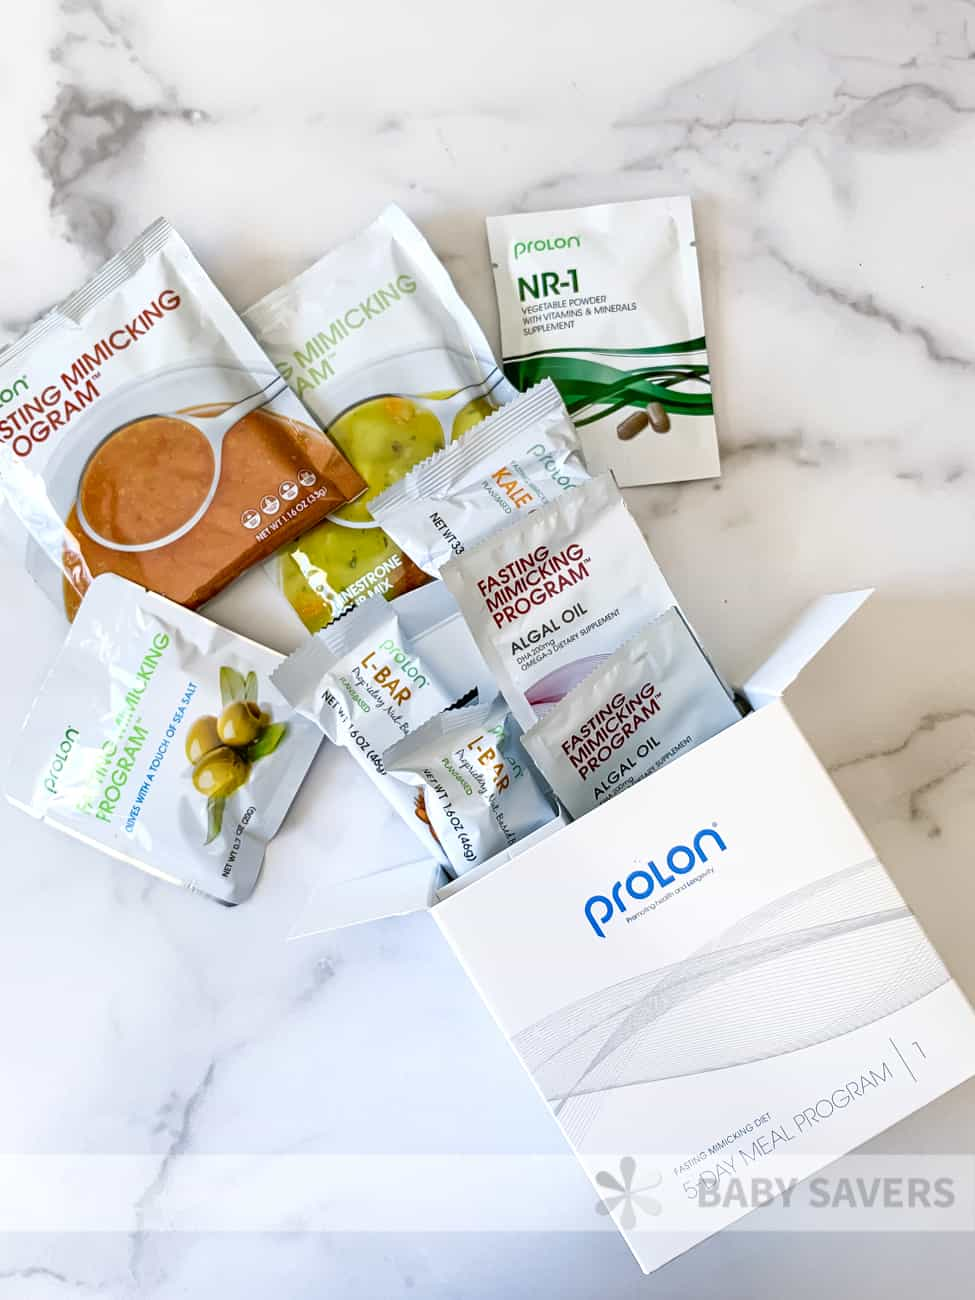 prolon review: everything in the day 1 box of the fasting mimicking diet